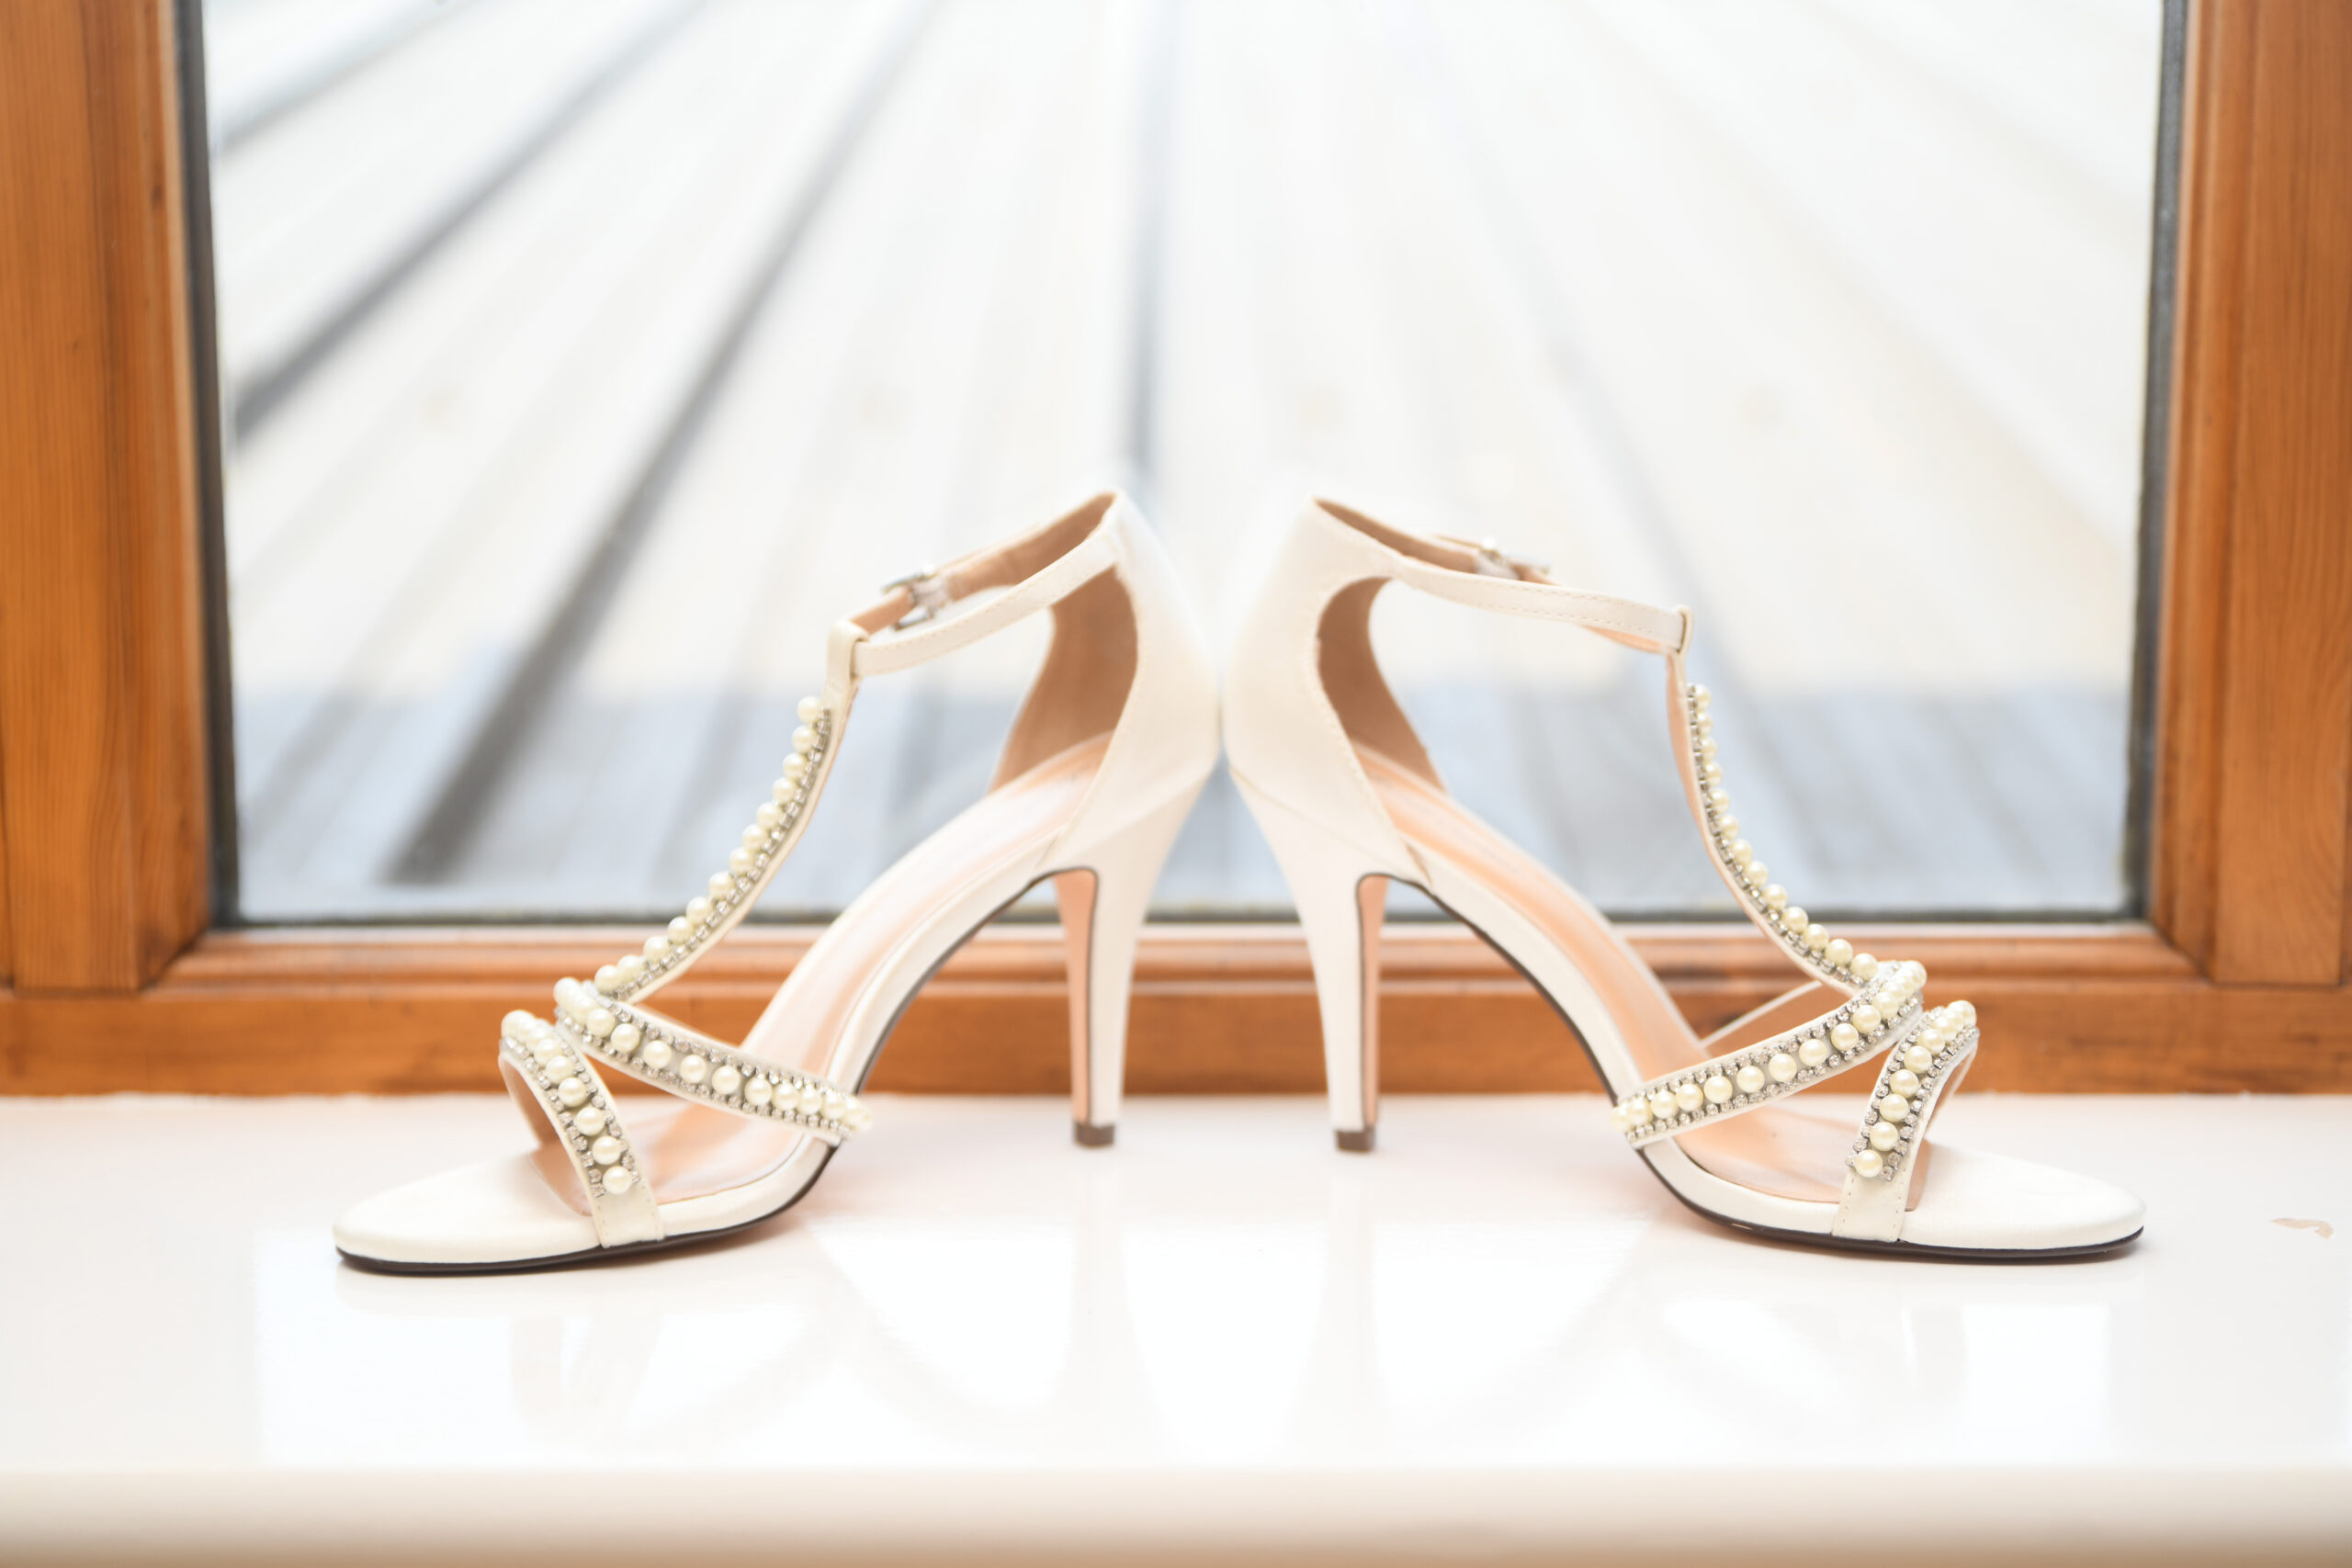 wedding Shoes at The Bridal Suite at Wootton Park